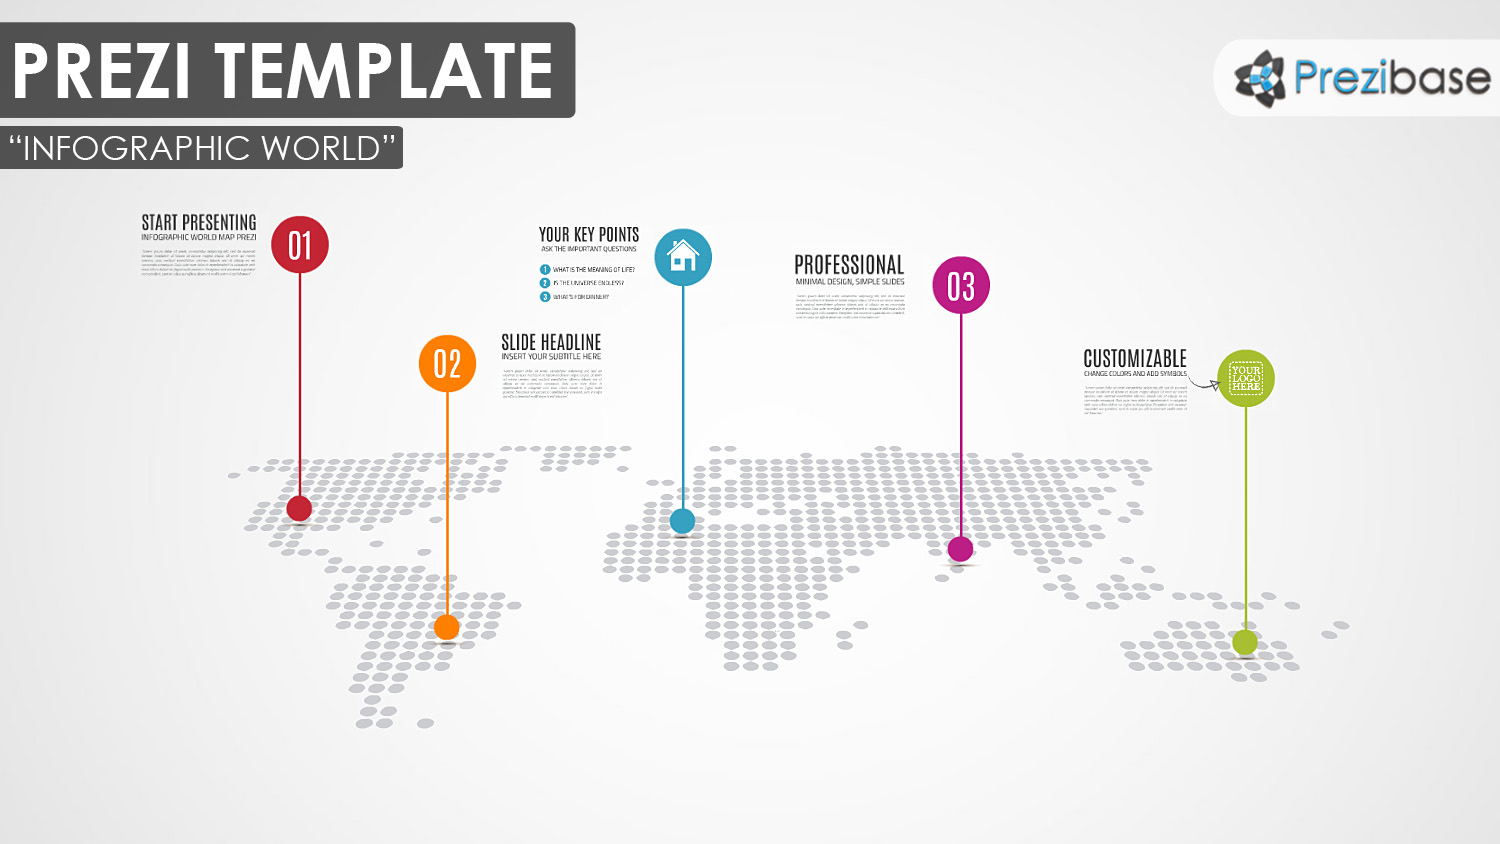 World map prezi templates prezibase customizable tablet computer layout zoom prezi template for presentations gumiabroncs Choice Image